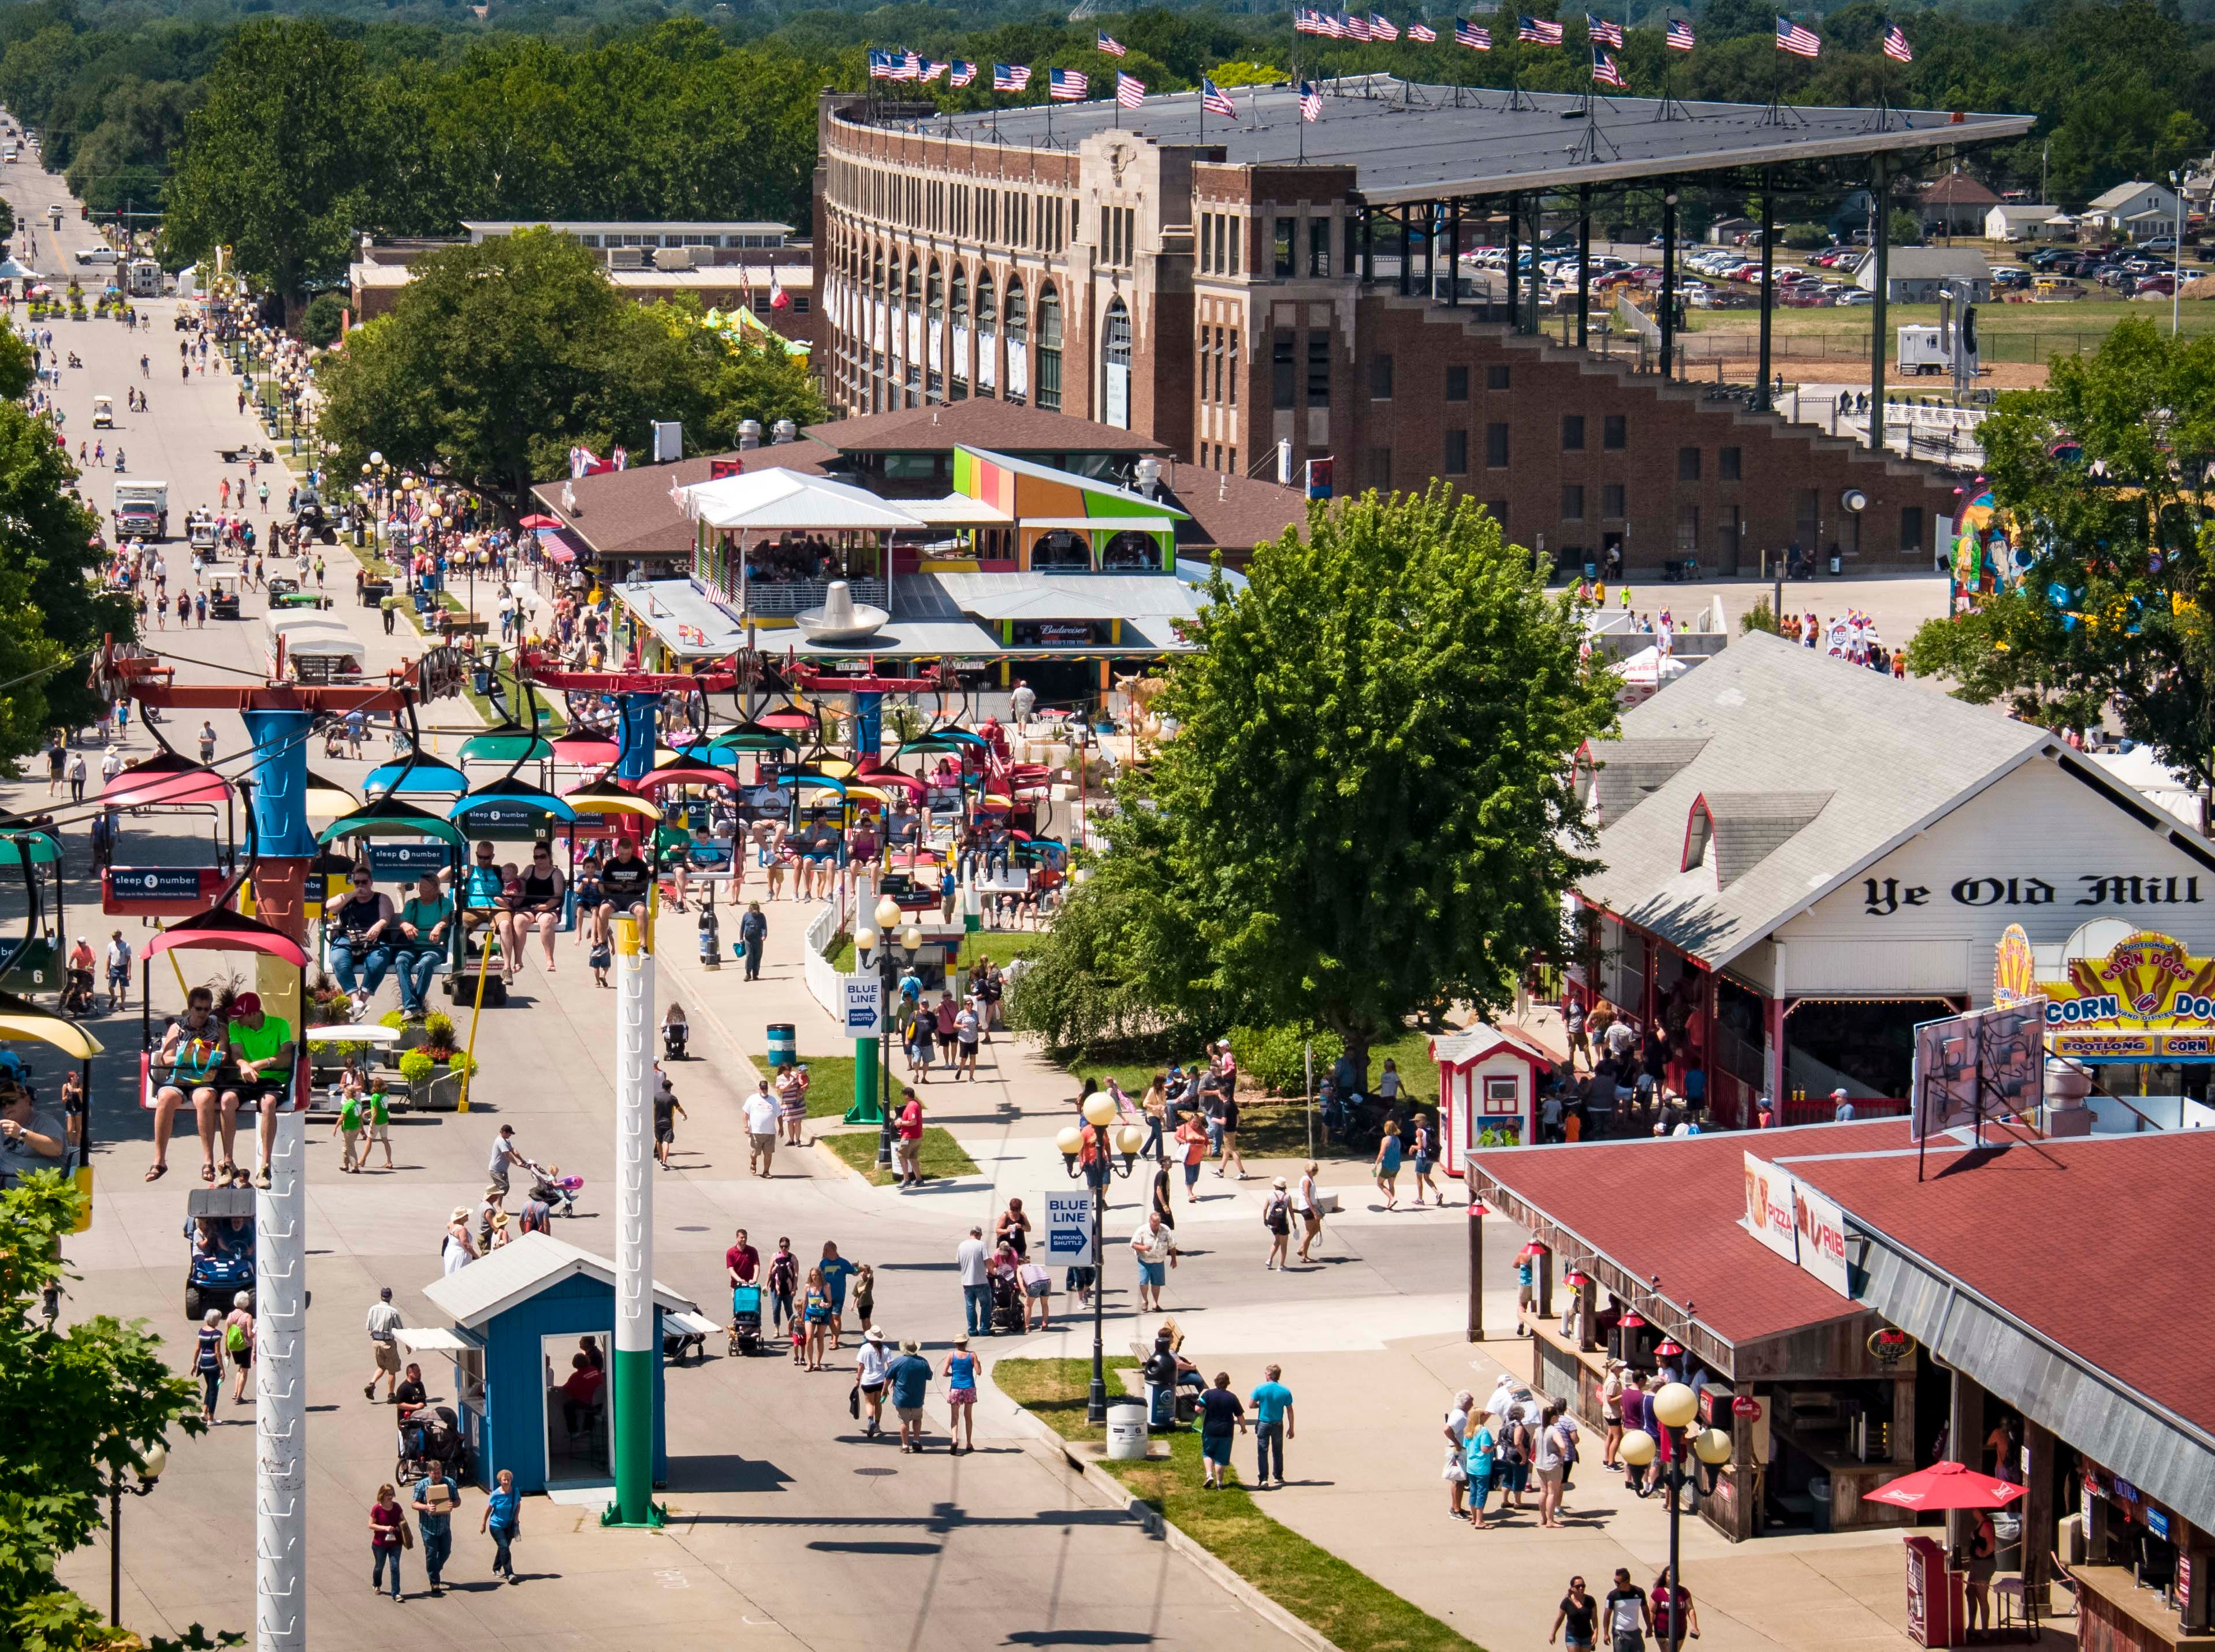 Aerial view of the grand concourse at the 2018 Iowa State Fair in Des Moines Thursday, Aug. 9, 2018.